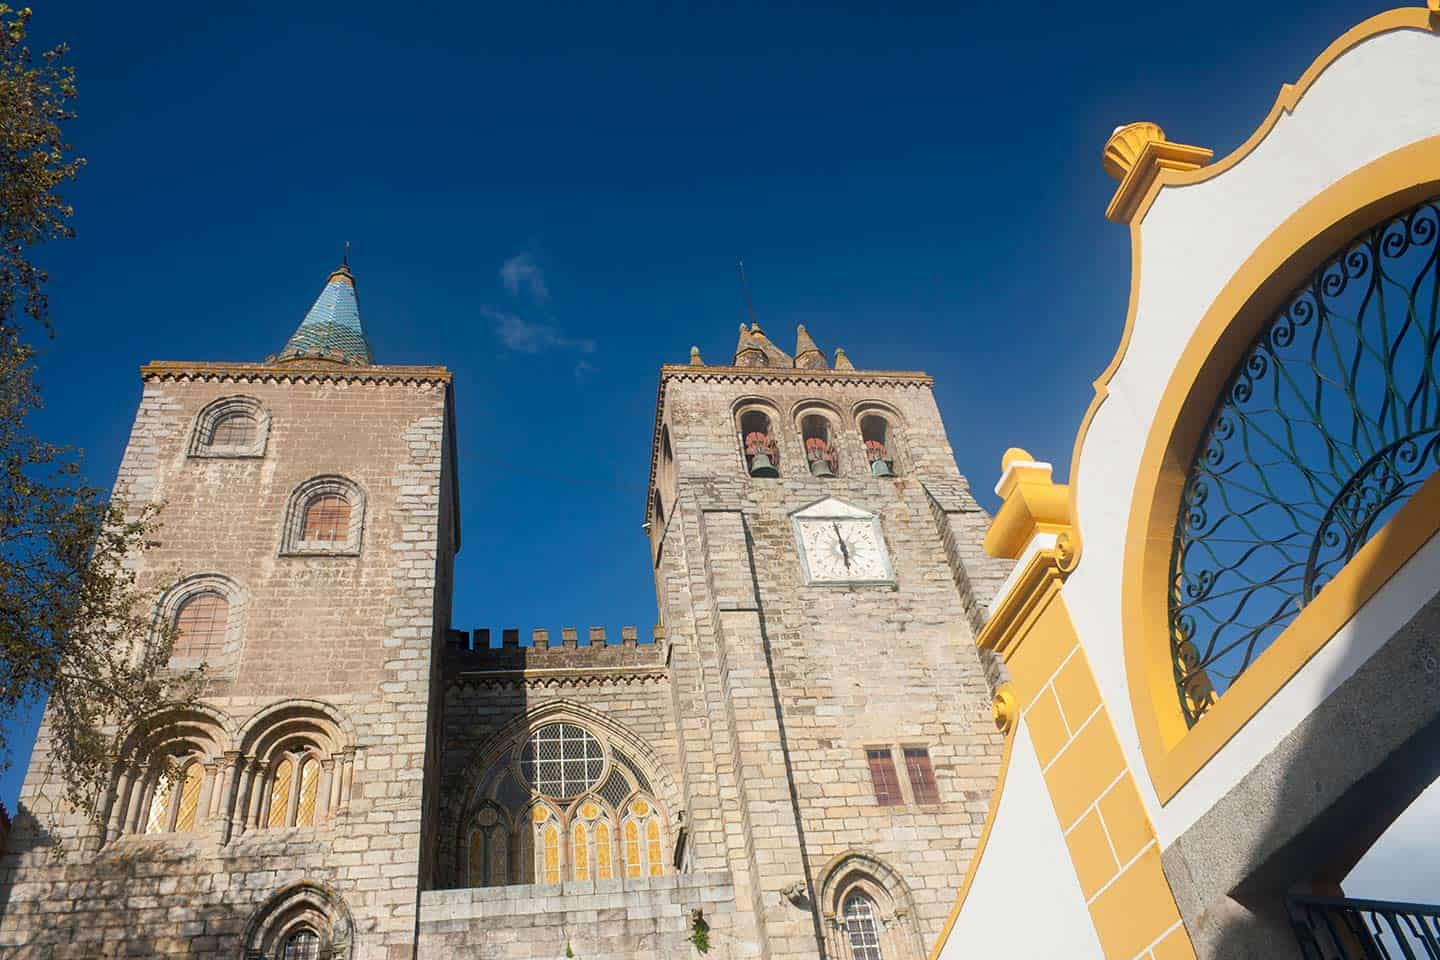 Image of the west towers of Evora Cathedral